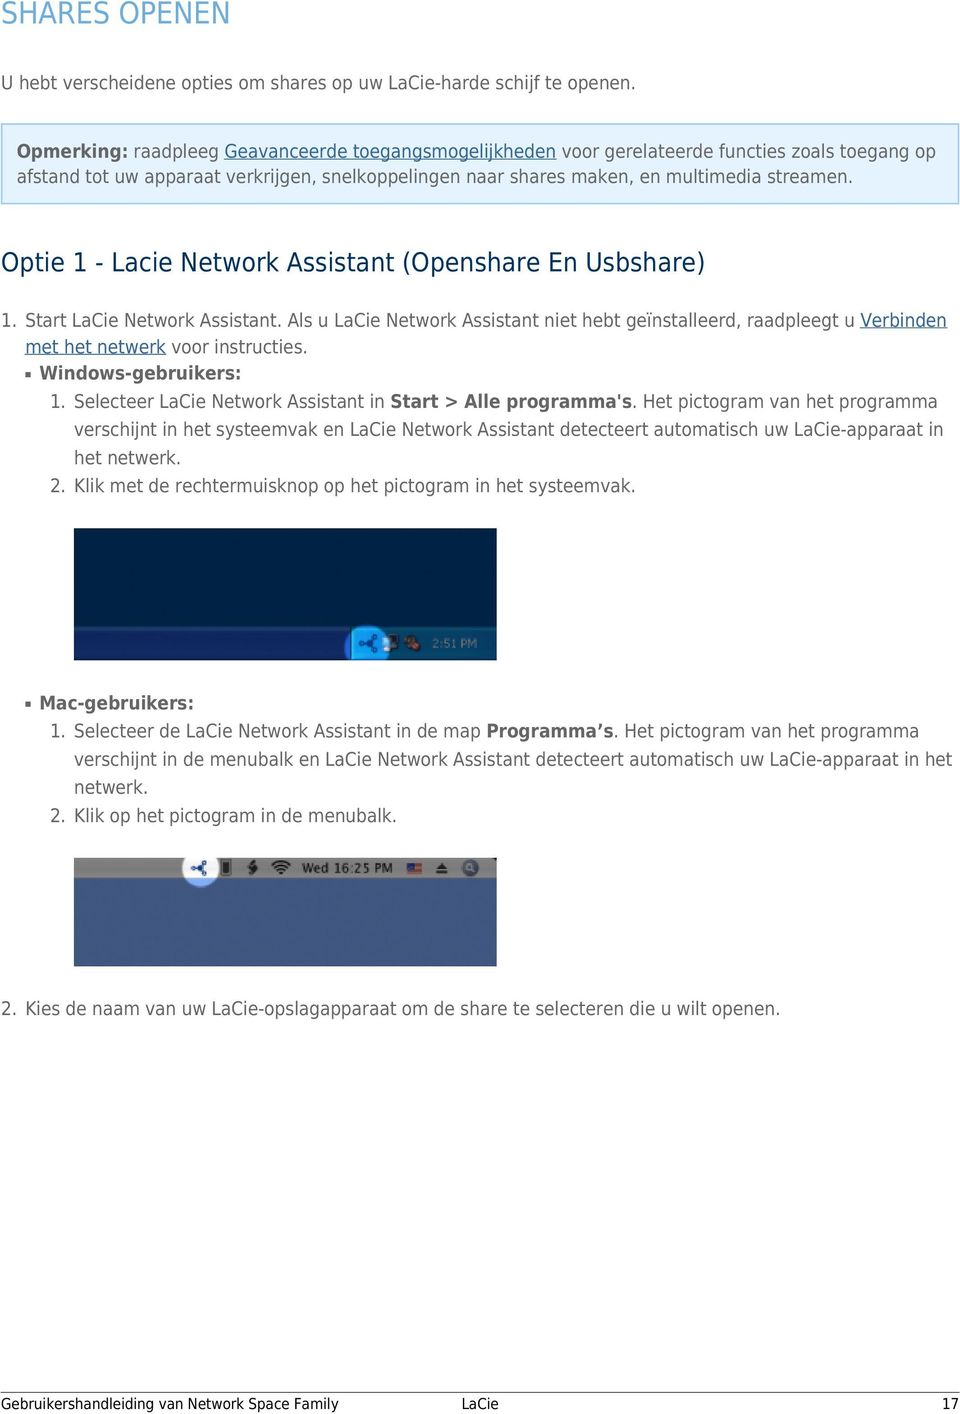 Optie 1 - Lacie Network Assistant (Openshare En Usbshare) 1. Start Network Assistant. Als u Network Assistant niet hebt geïnstalleerd, raadpleegt u Verbinden met het netwerk voor instructies.